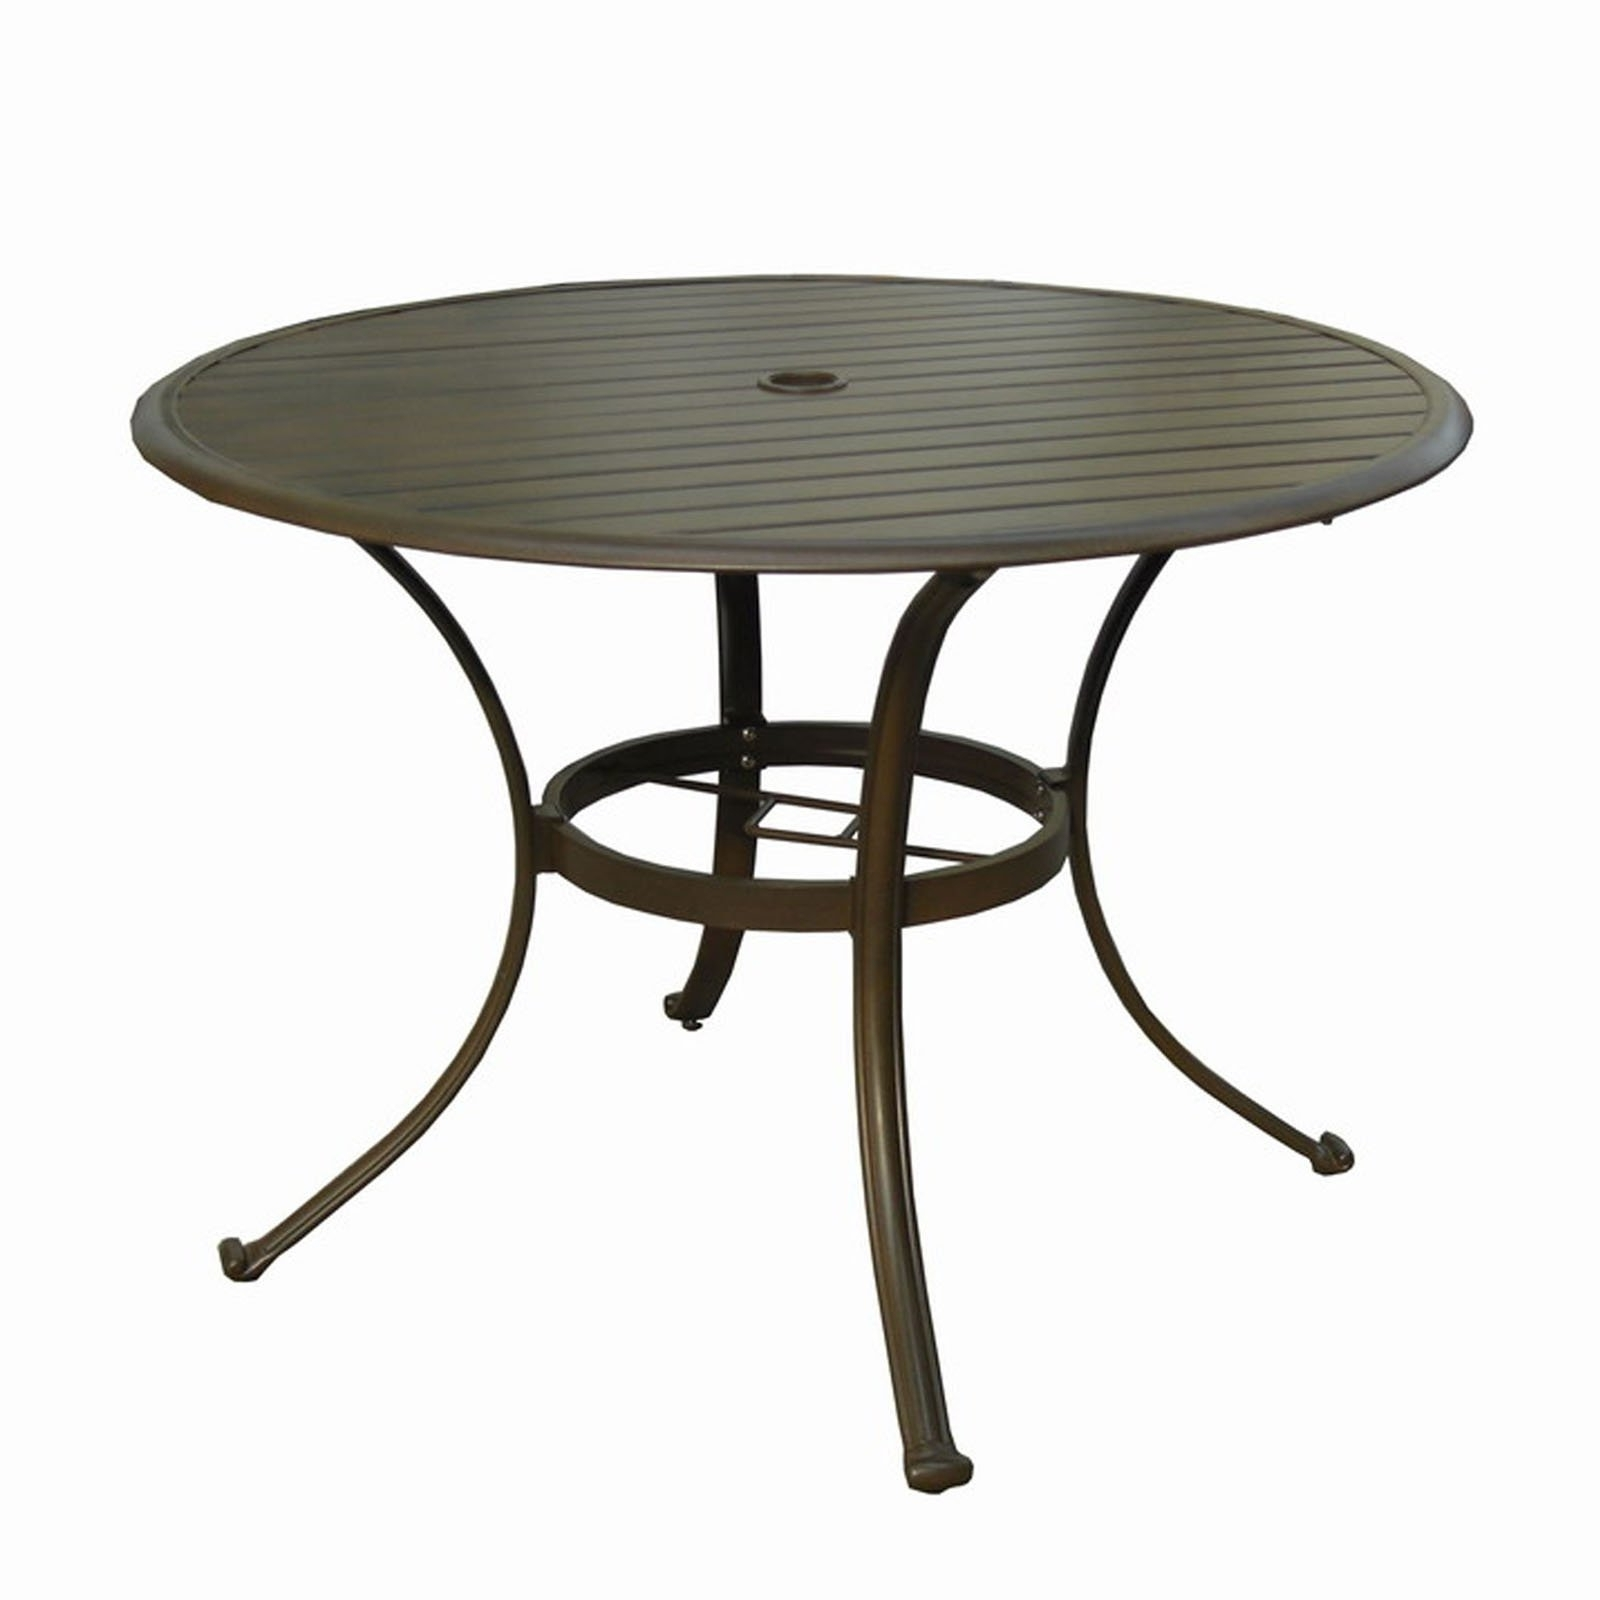 Well Known Awesome Patio Table With Umbrella Hole Patio Table With Umbrella Inside Patio Tables With Umbrella Hole (View 19 of 20)